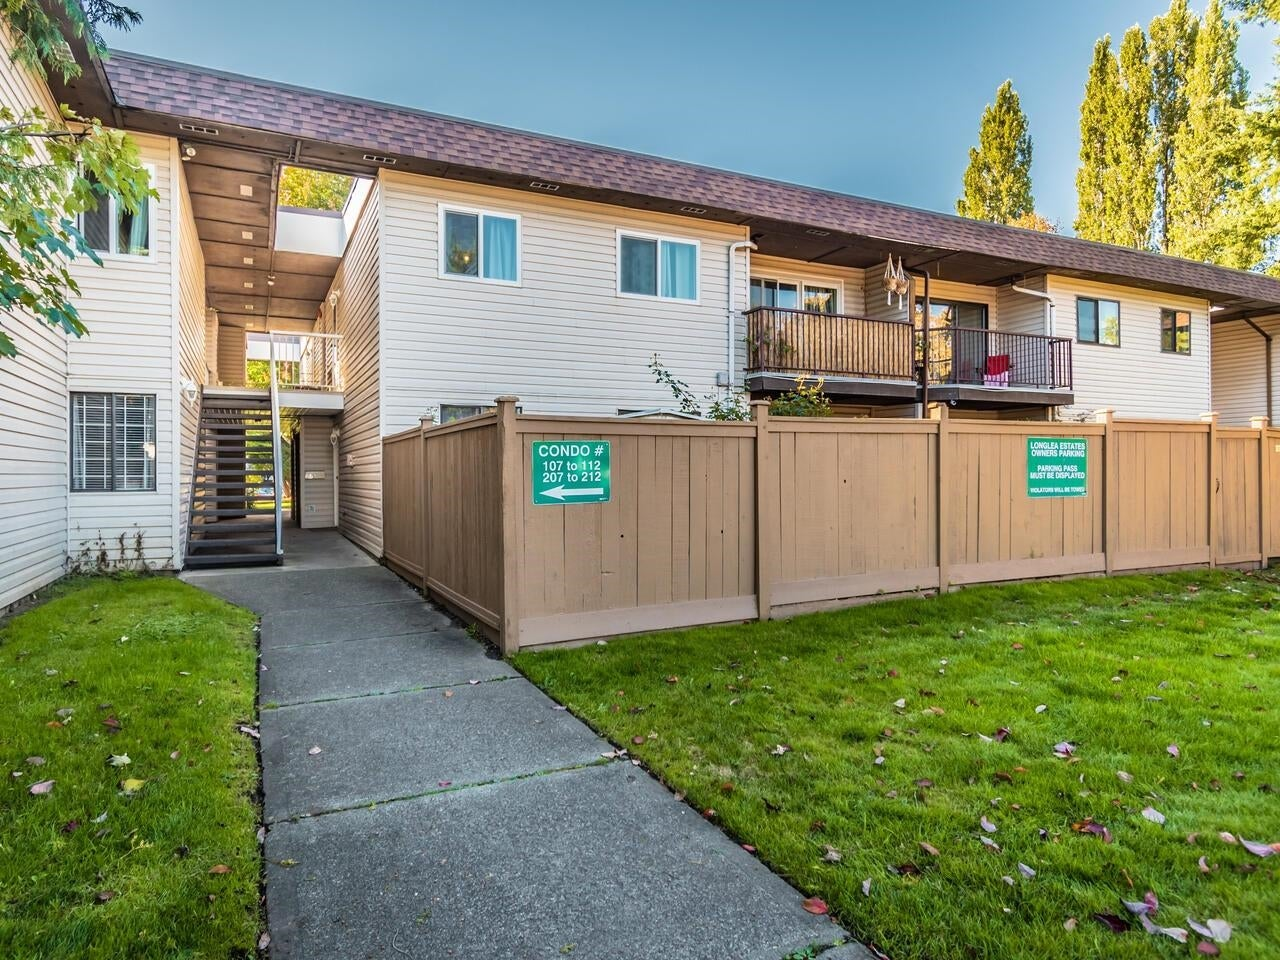 107 5191 203 STREET - Langley City Apartment/Condo for sale, 2 Bedrooms (R2625712) - #1